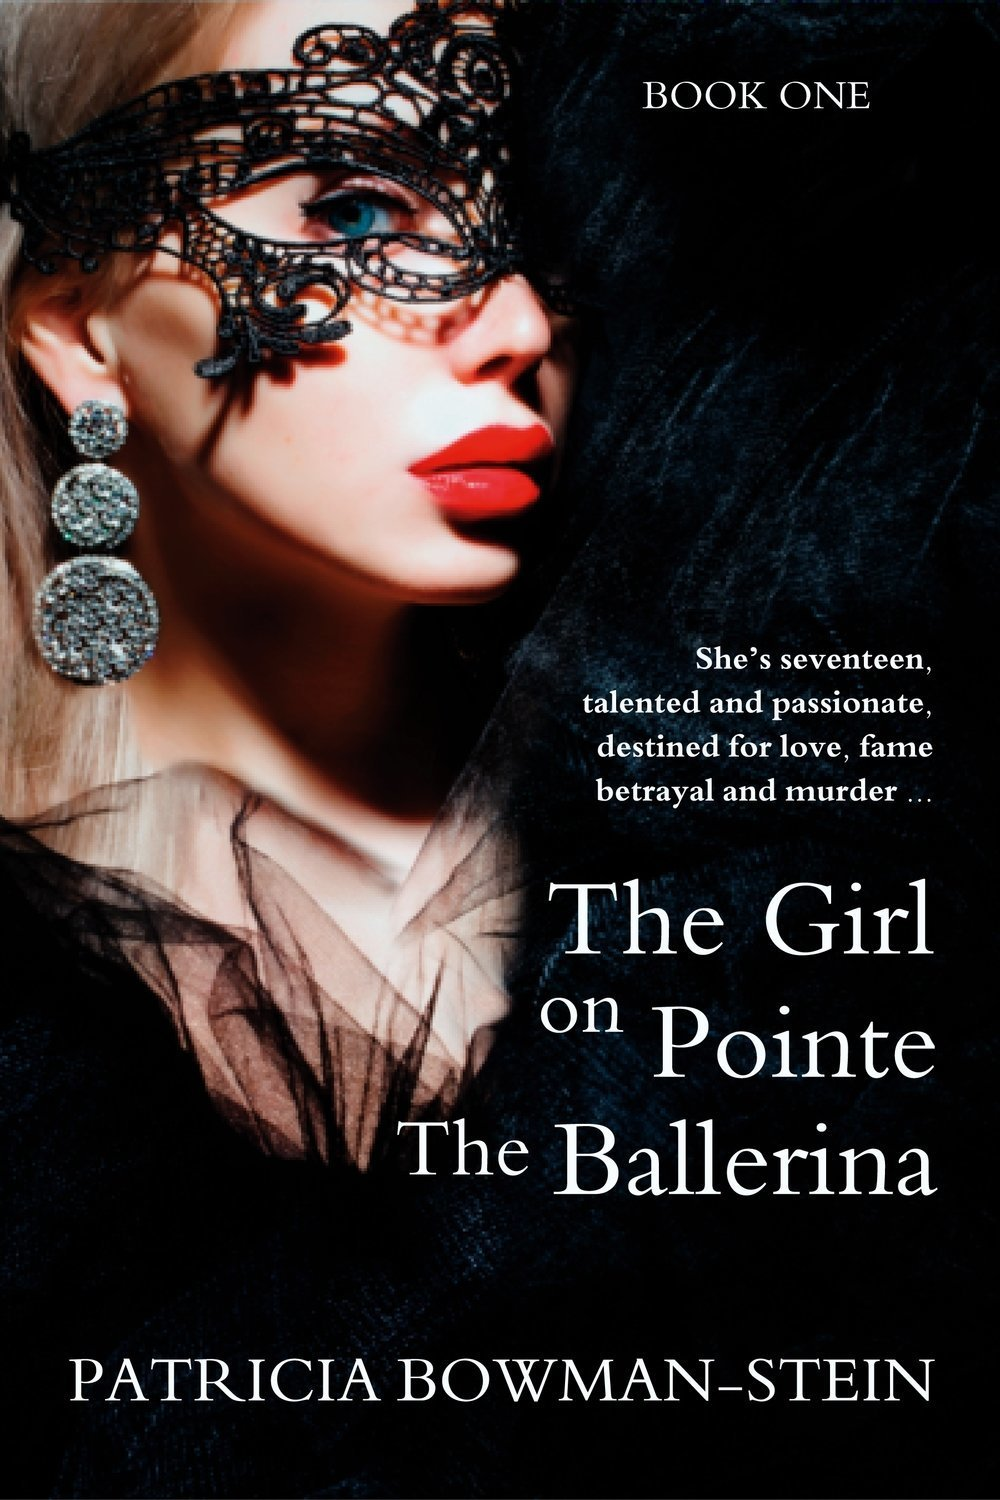 The Girl On Pointe The Ballerina - Performing Arts (Film, Theatre, Dance, Music)